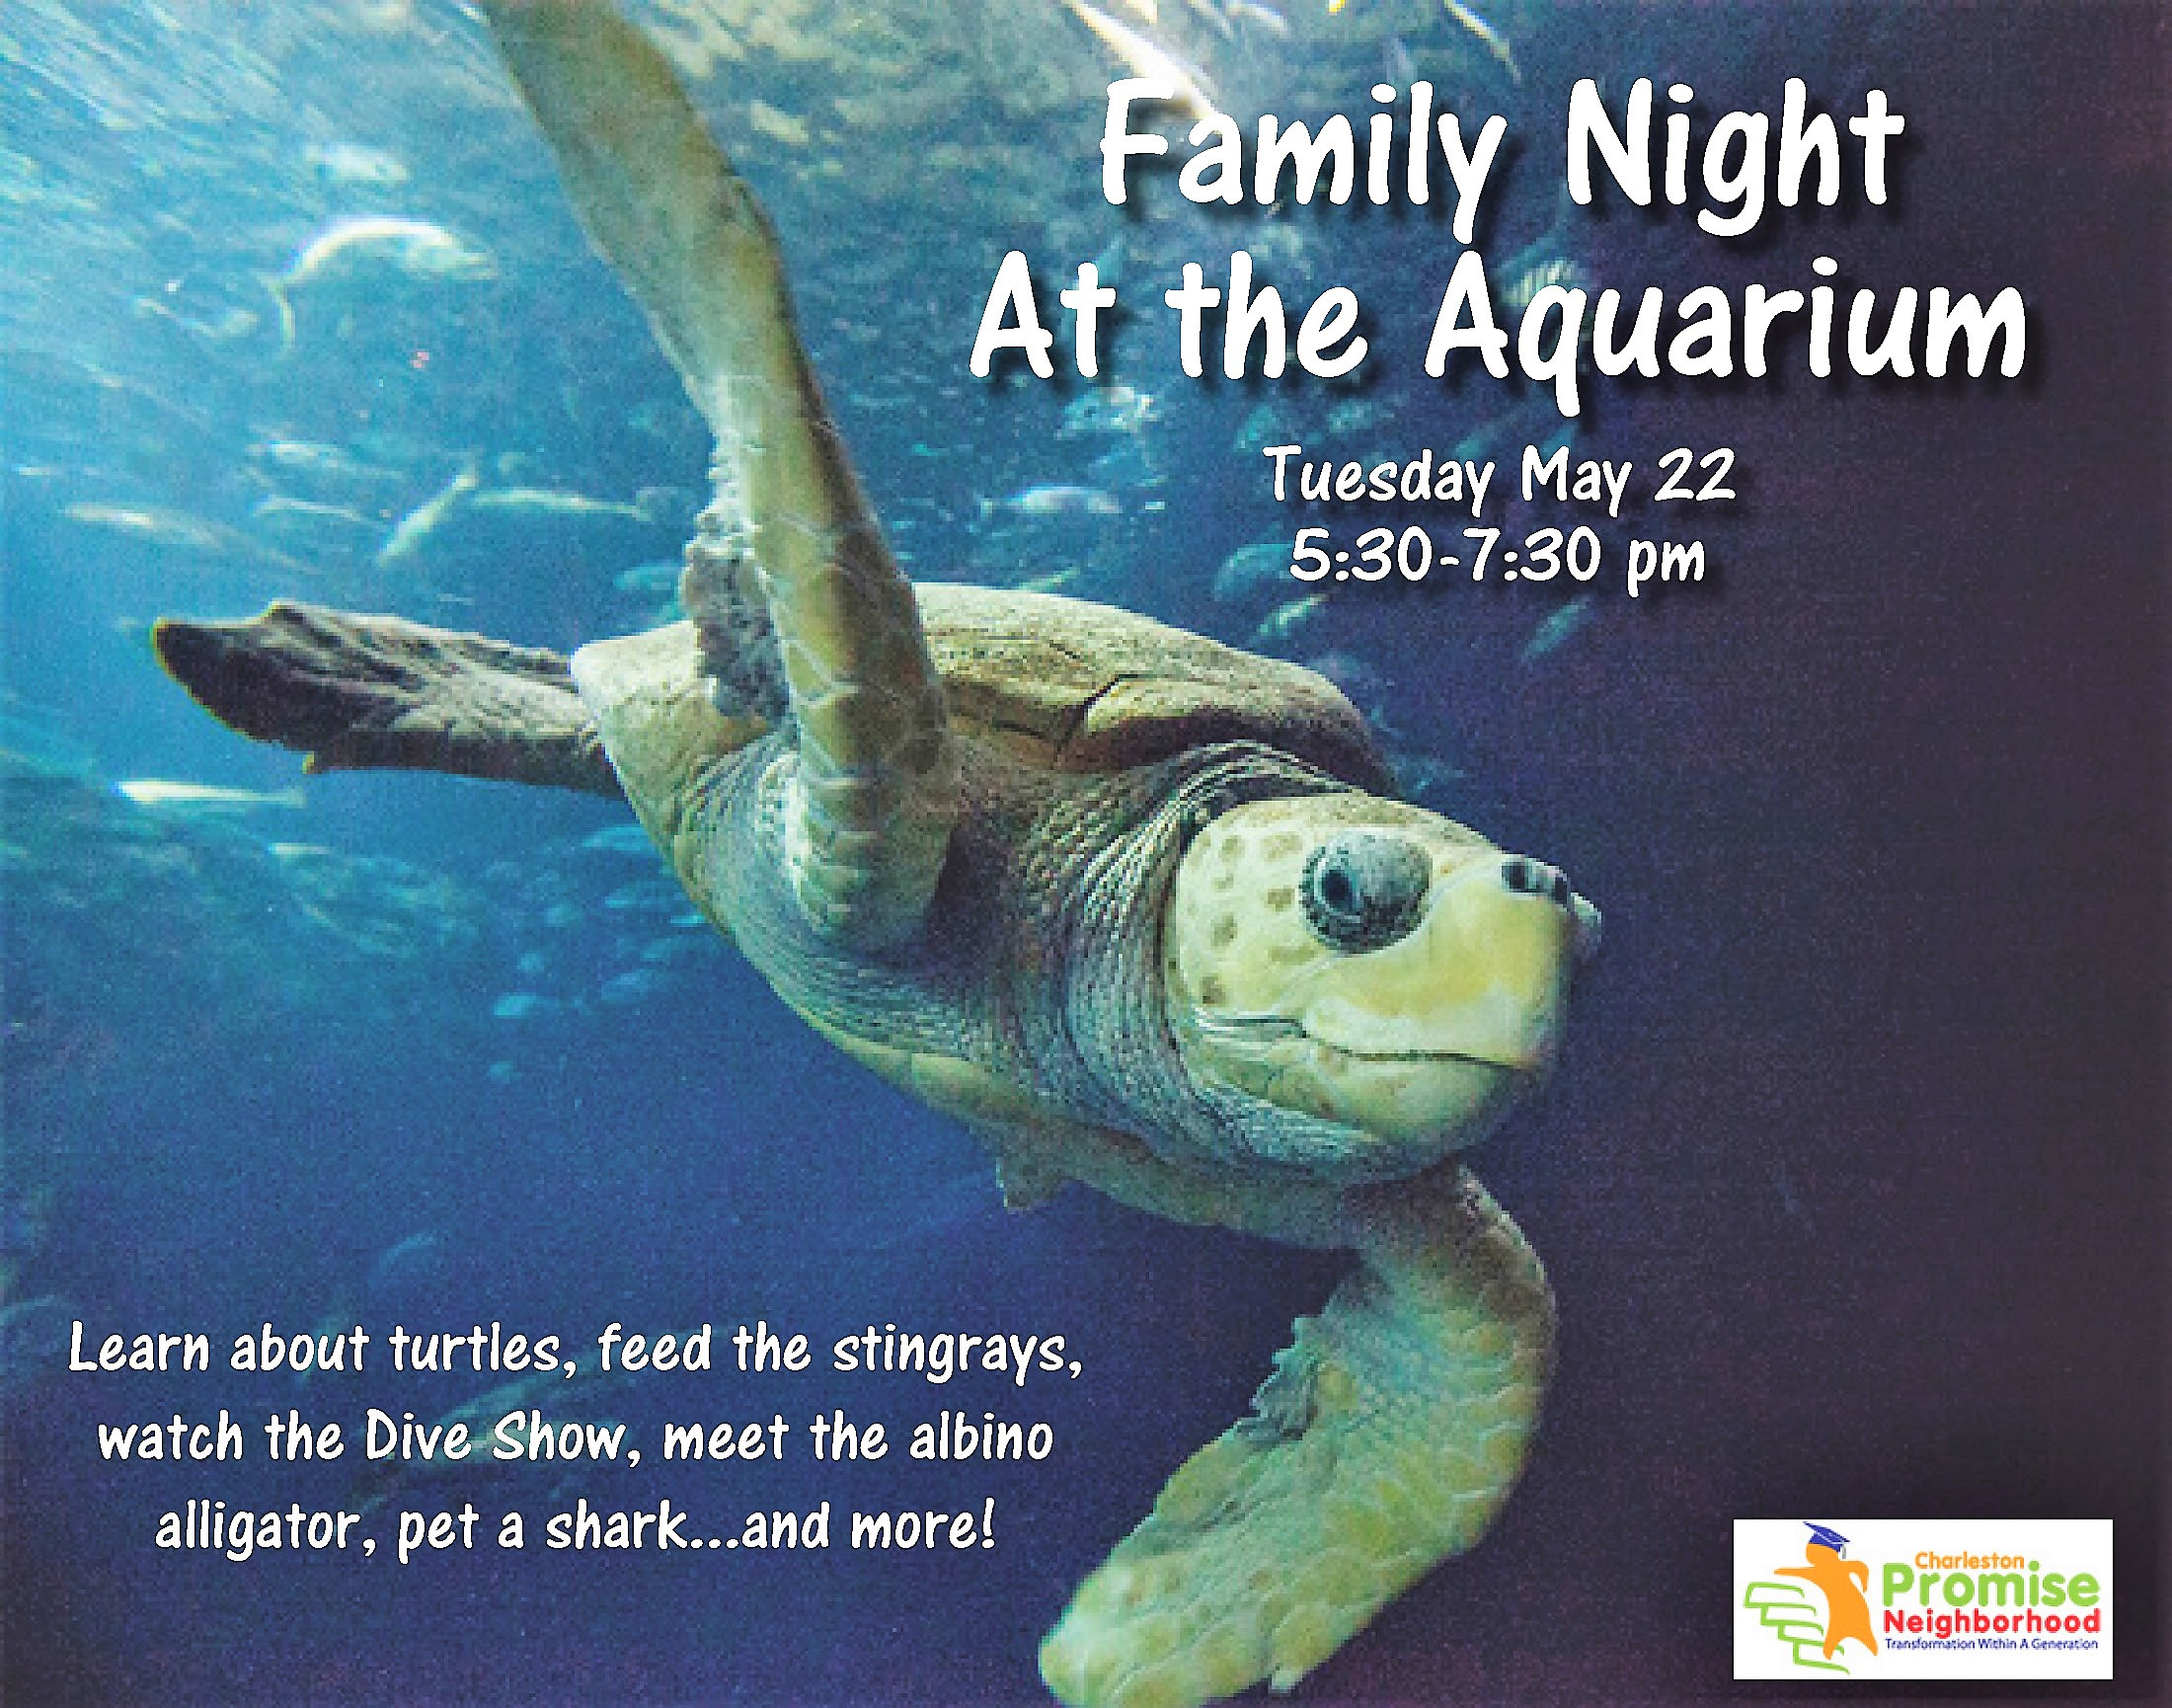 Family Night at the Aquarium